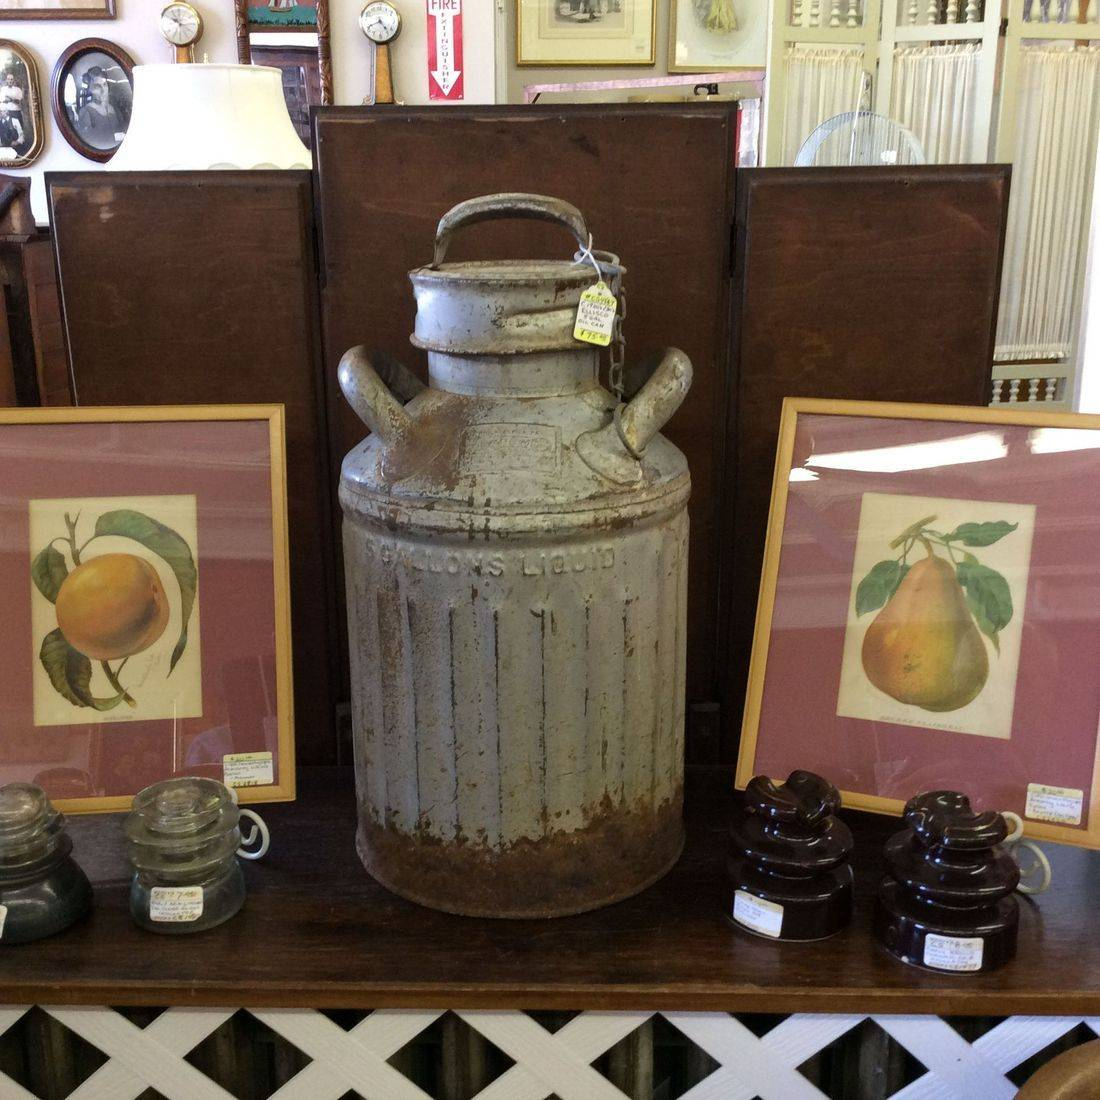 C. 1920's/30's Ellisco  5-Gallon Oil Can   $75.00